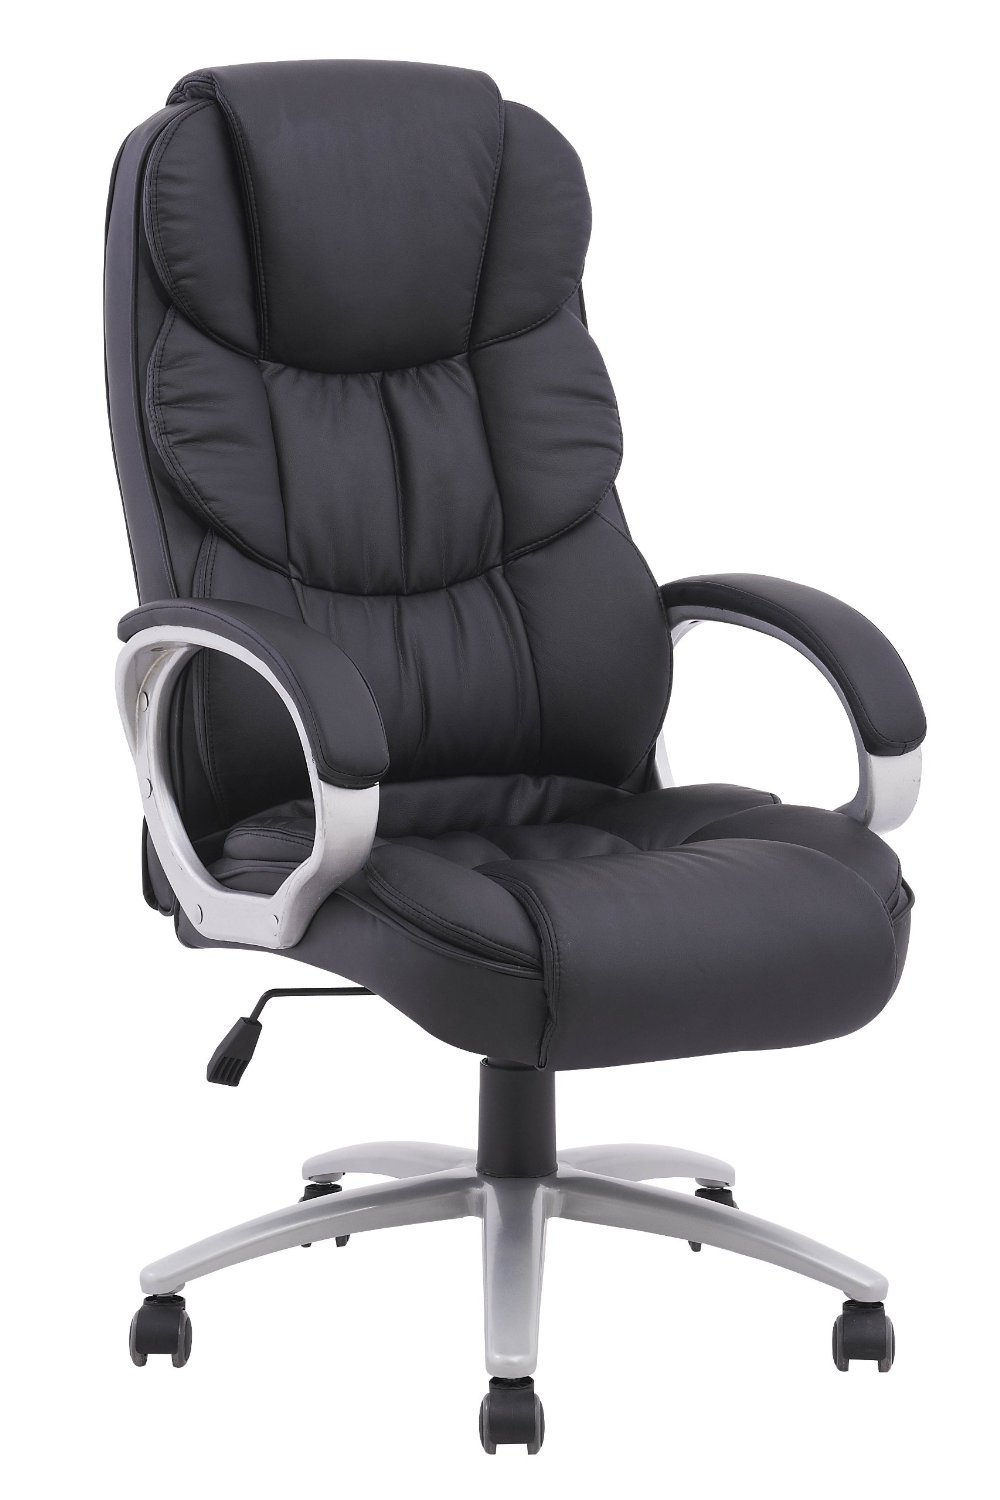 Amazon.com - High Back Executive PU Leather Ergonomic Office Desk Computer Chair O10 -